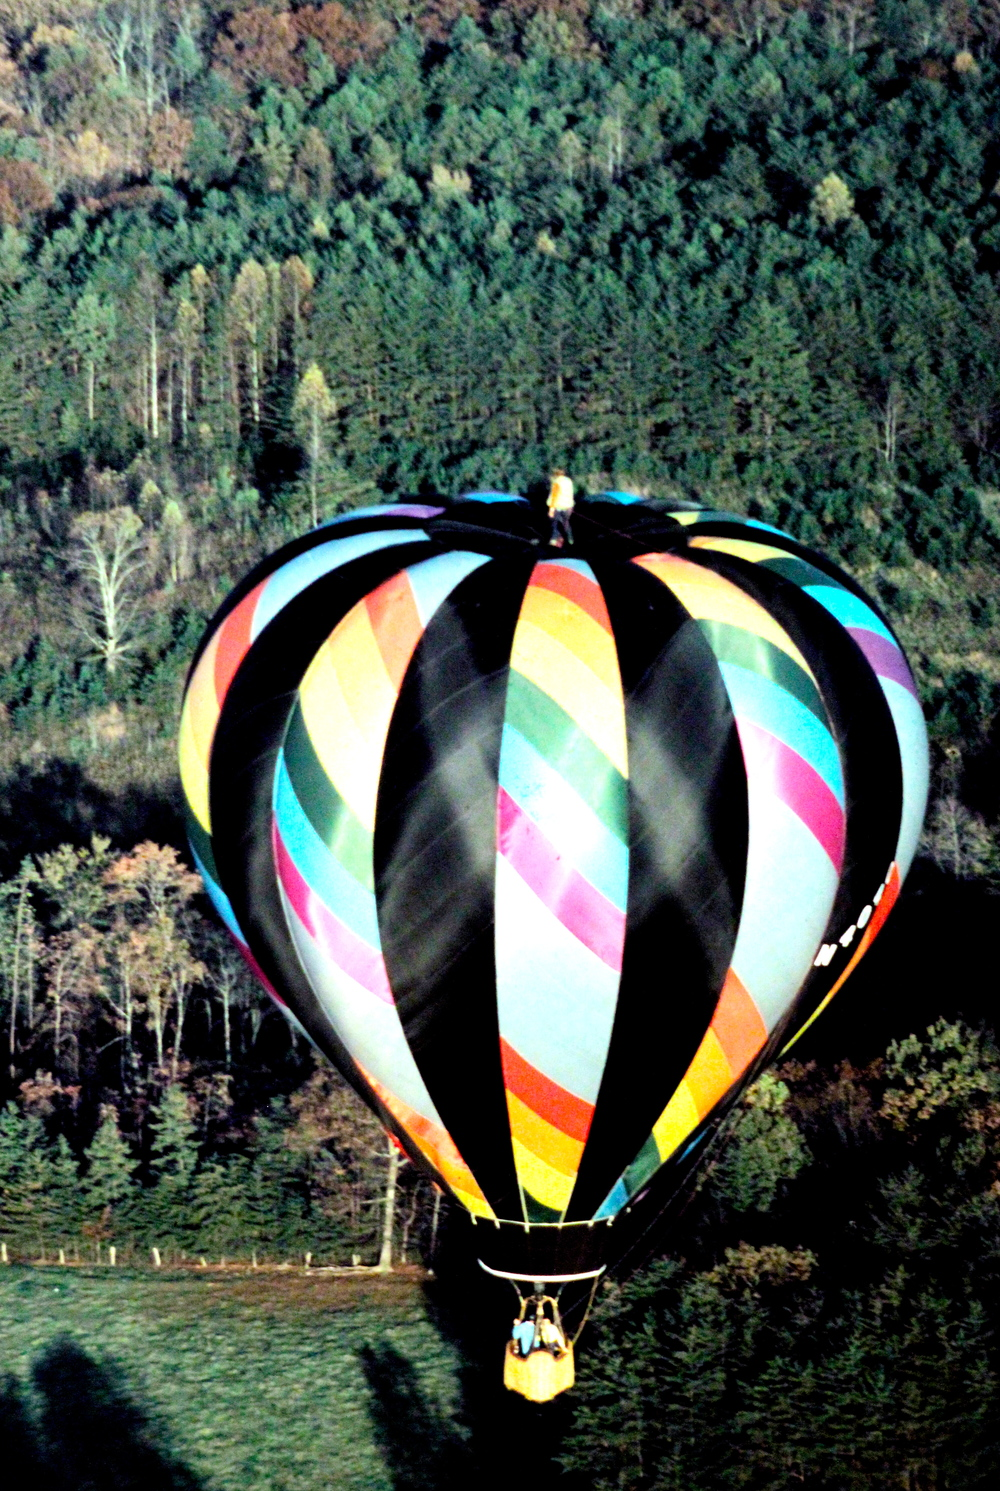 man-standing-on-top-of-hot-air-balloon.jpg